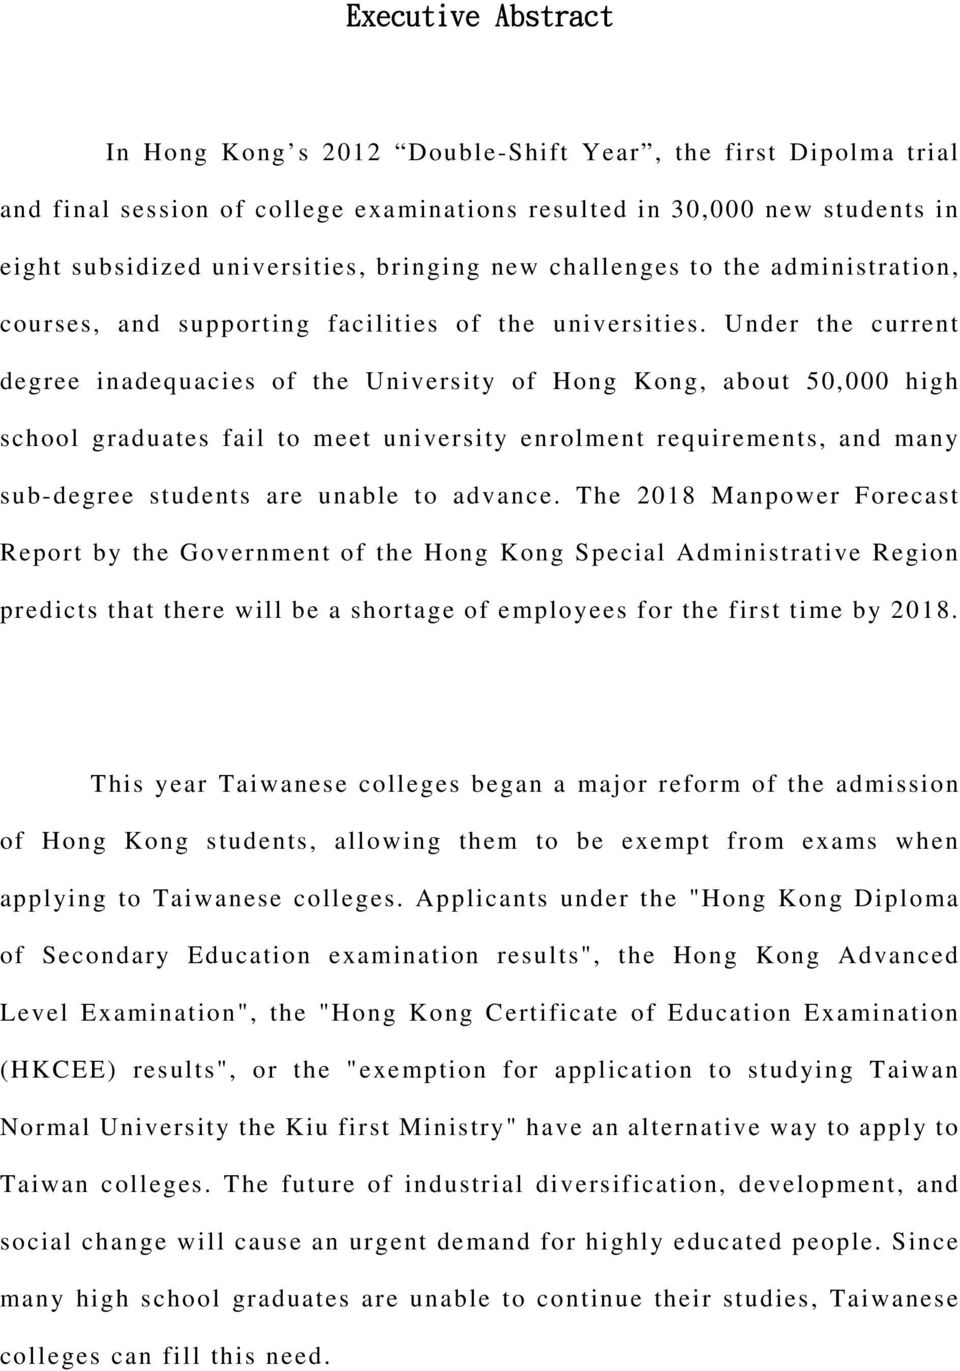 Under the current degree inadequacies of the University of Hong Kong, about 50,000 high school graduates fail to meet university enrolment requirements, and many sub-degree students are unable to